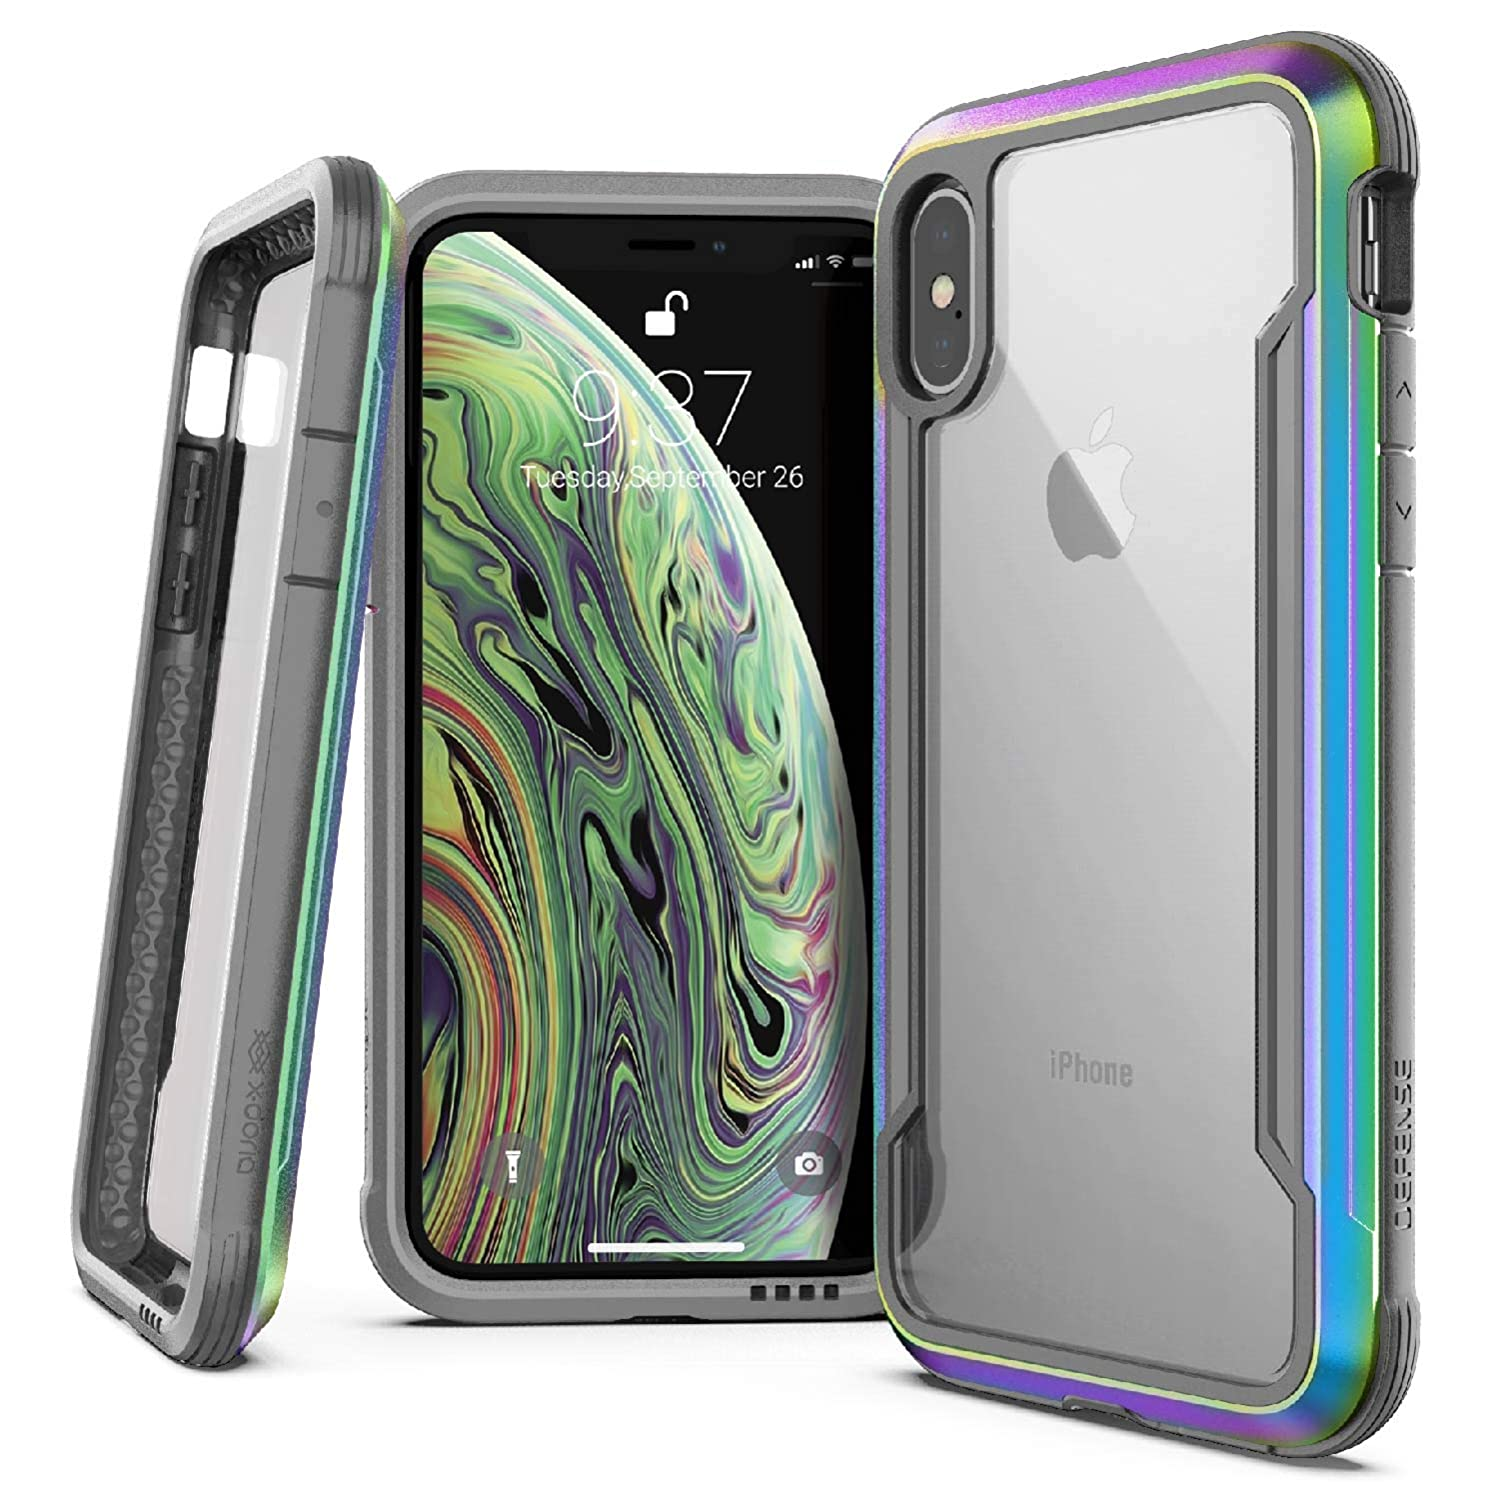 low priced 248ad 25af8 X-Doria Defense Shield Series Case Designed for iPhone X, iPhone Xs,  Military Grade Drop Tested, Anodized Aluminum, TPU, and Polycarbonate  Protective ...